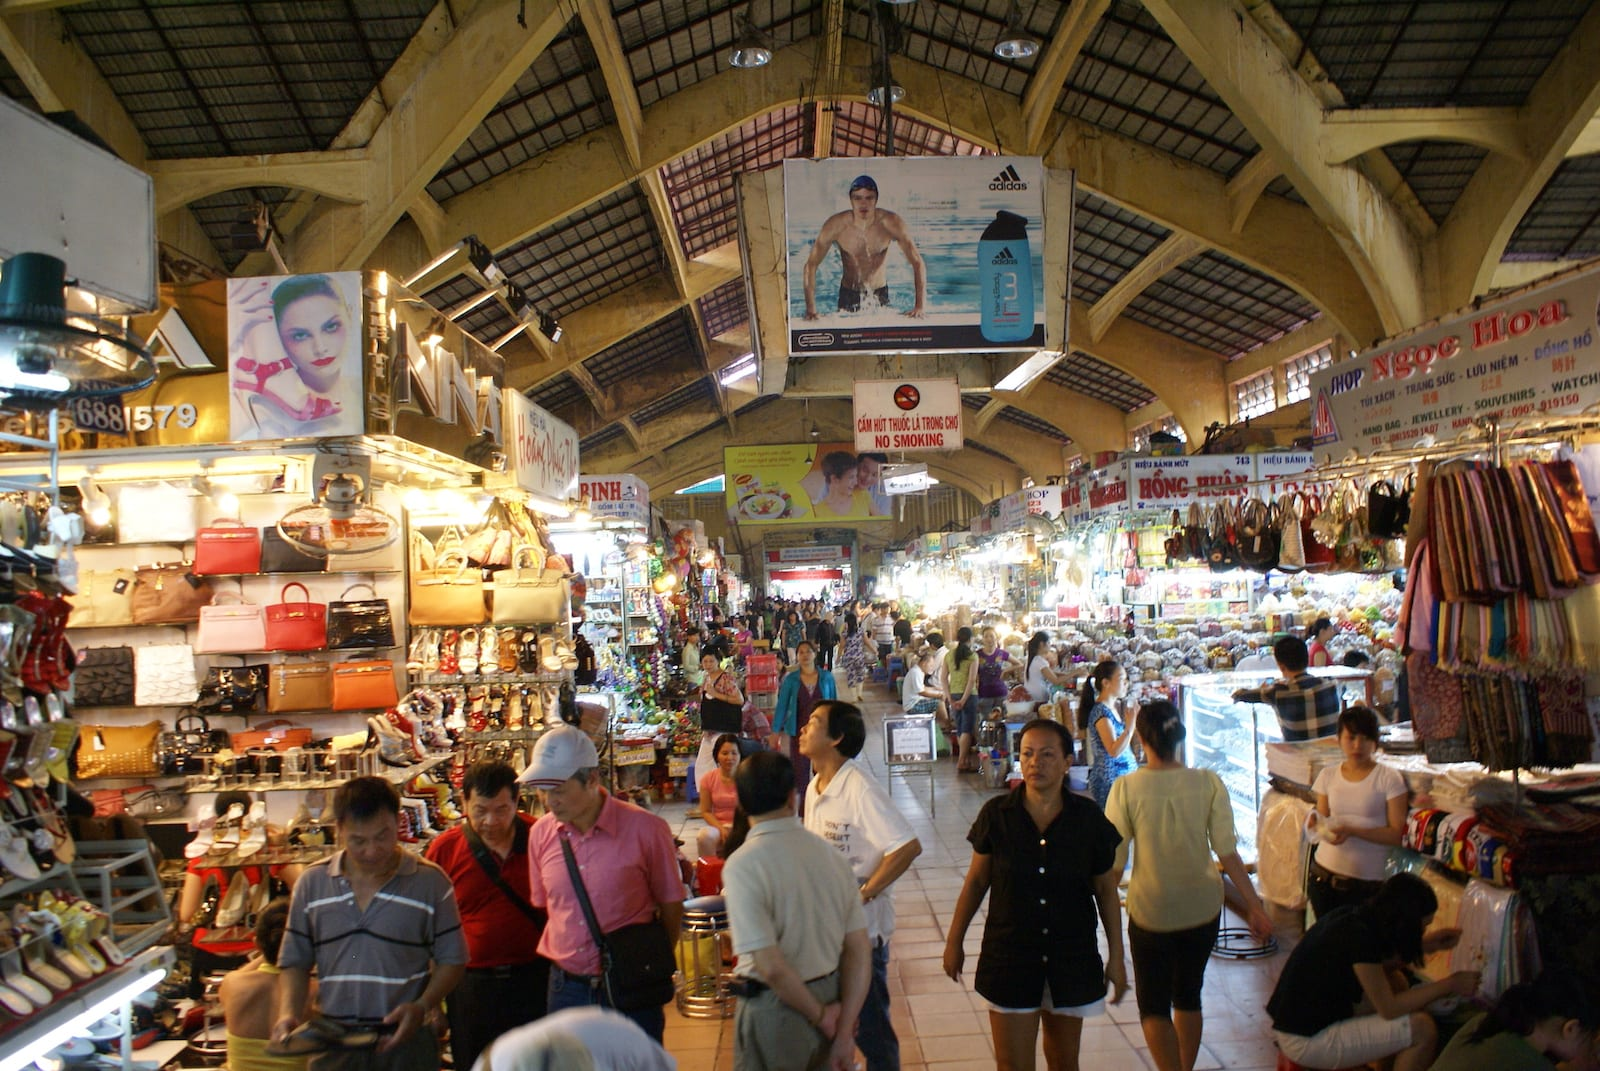 Image of the Ben Thanh Market in Ho Chi Minh City